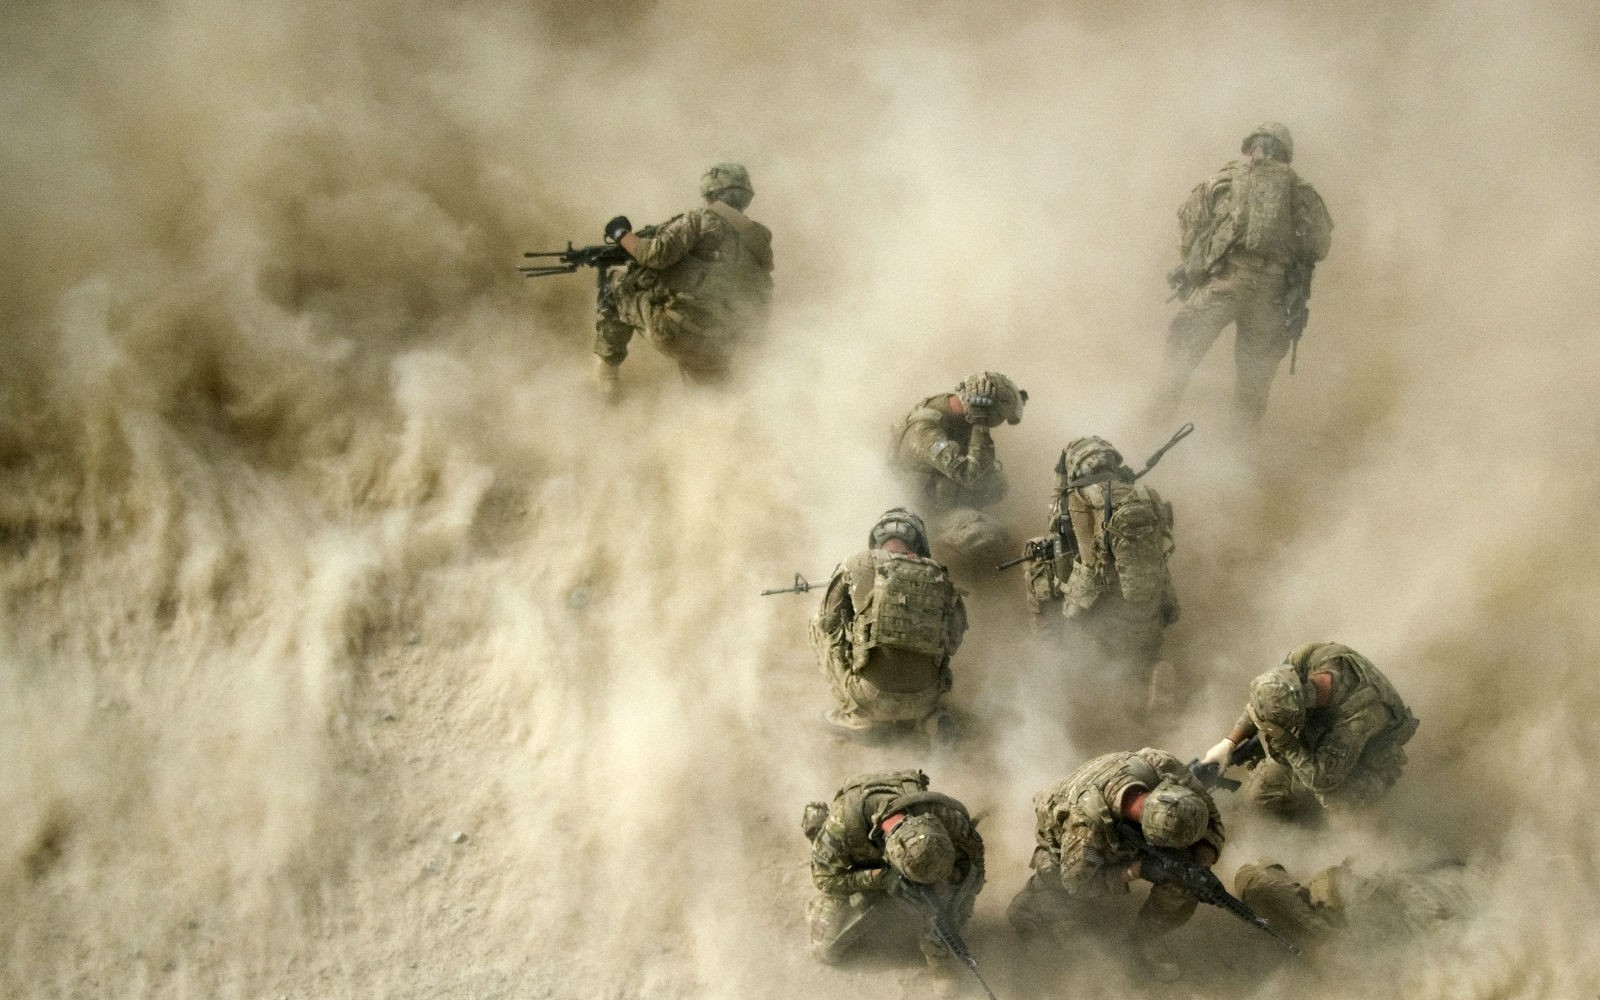 soldiers War military HD Wallpaper